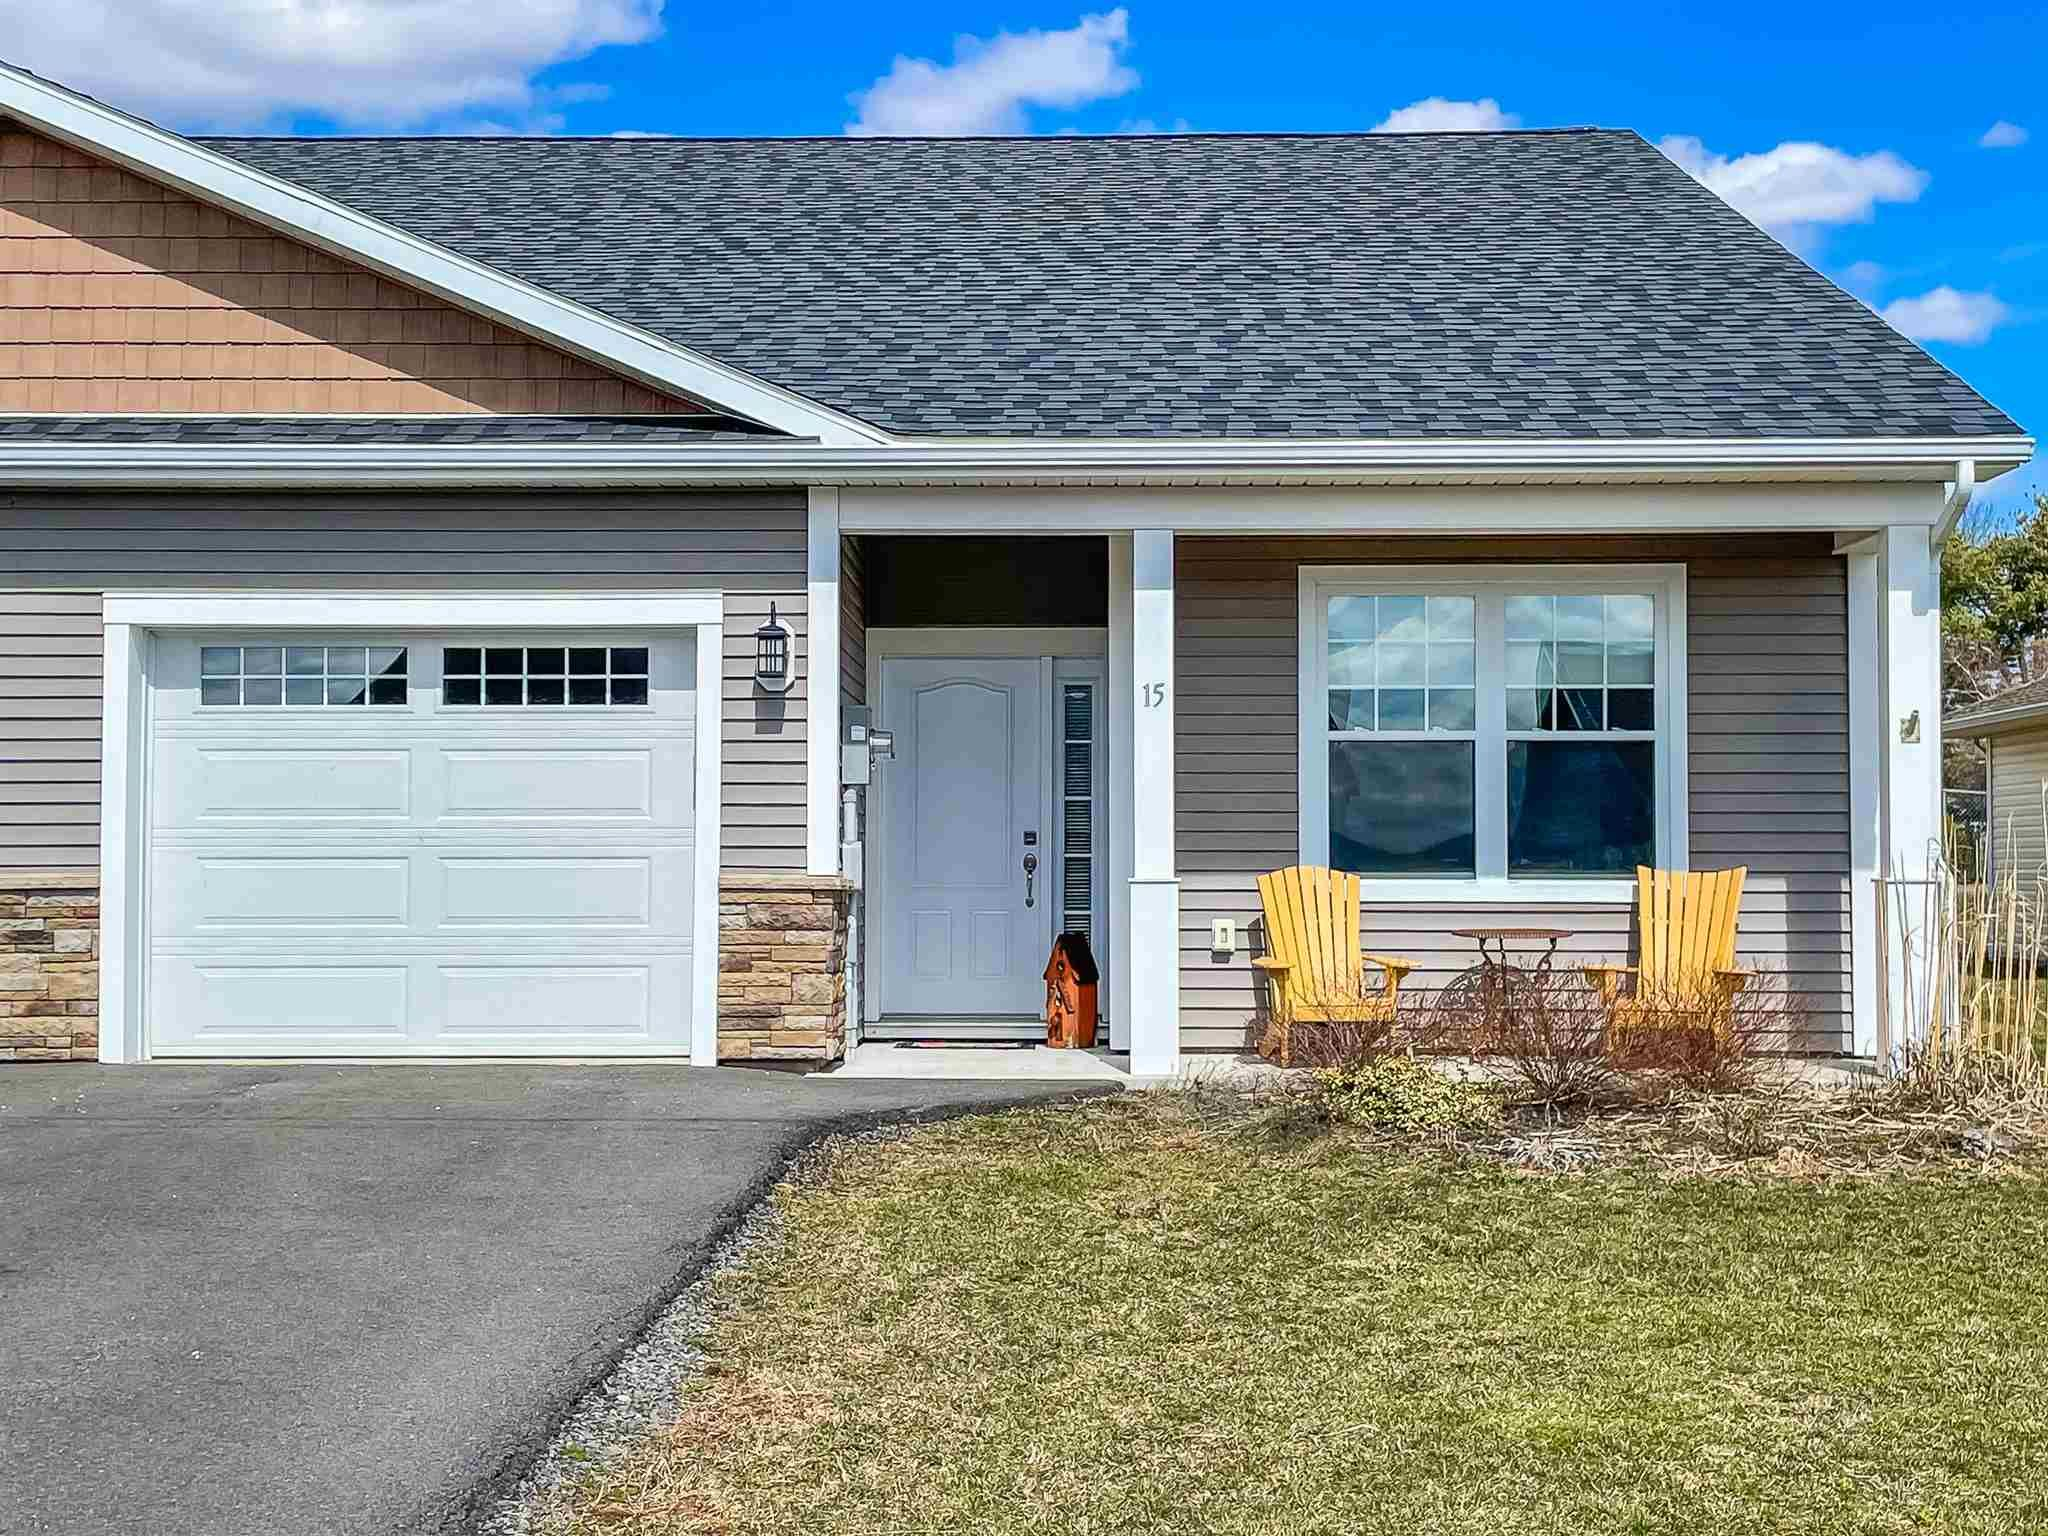 Main Photo: 15 Mackinnon Court in Kentville: 404-Kings County Residential for sale (Annapolis Valley)  : MLS®# 202107292